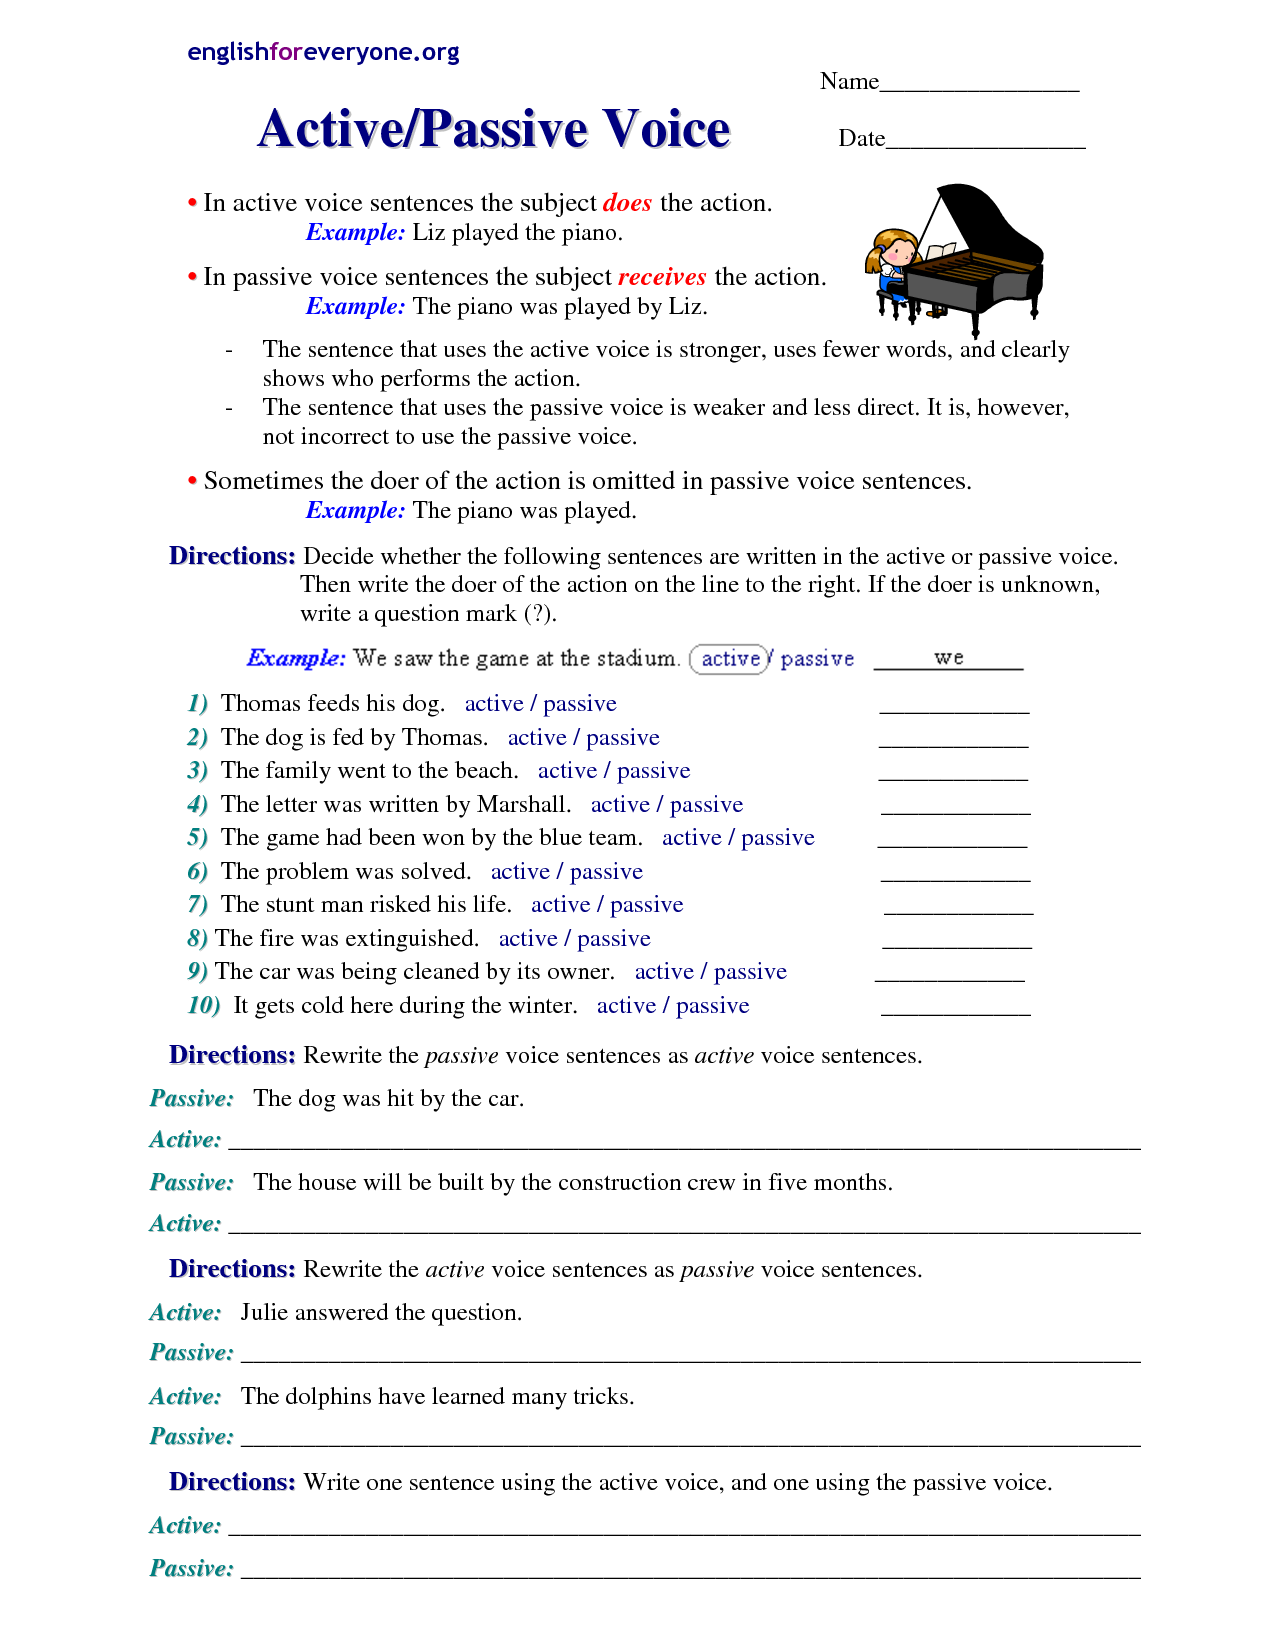 Worksheets Active And Passive Voice Worksheet 1000 images about passive voice on pinterest active worksheets and sentences